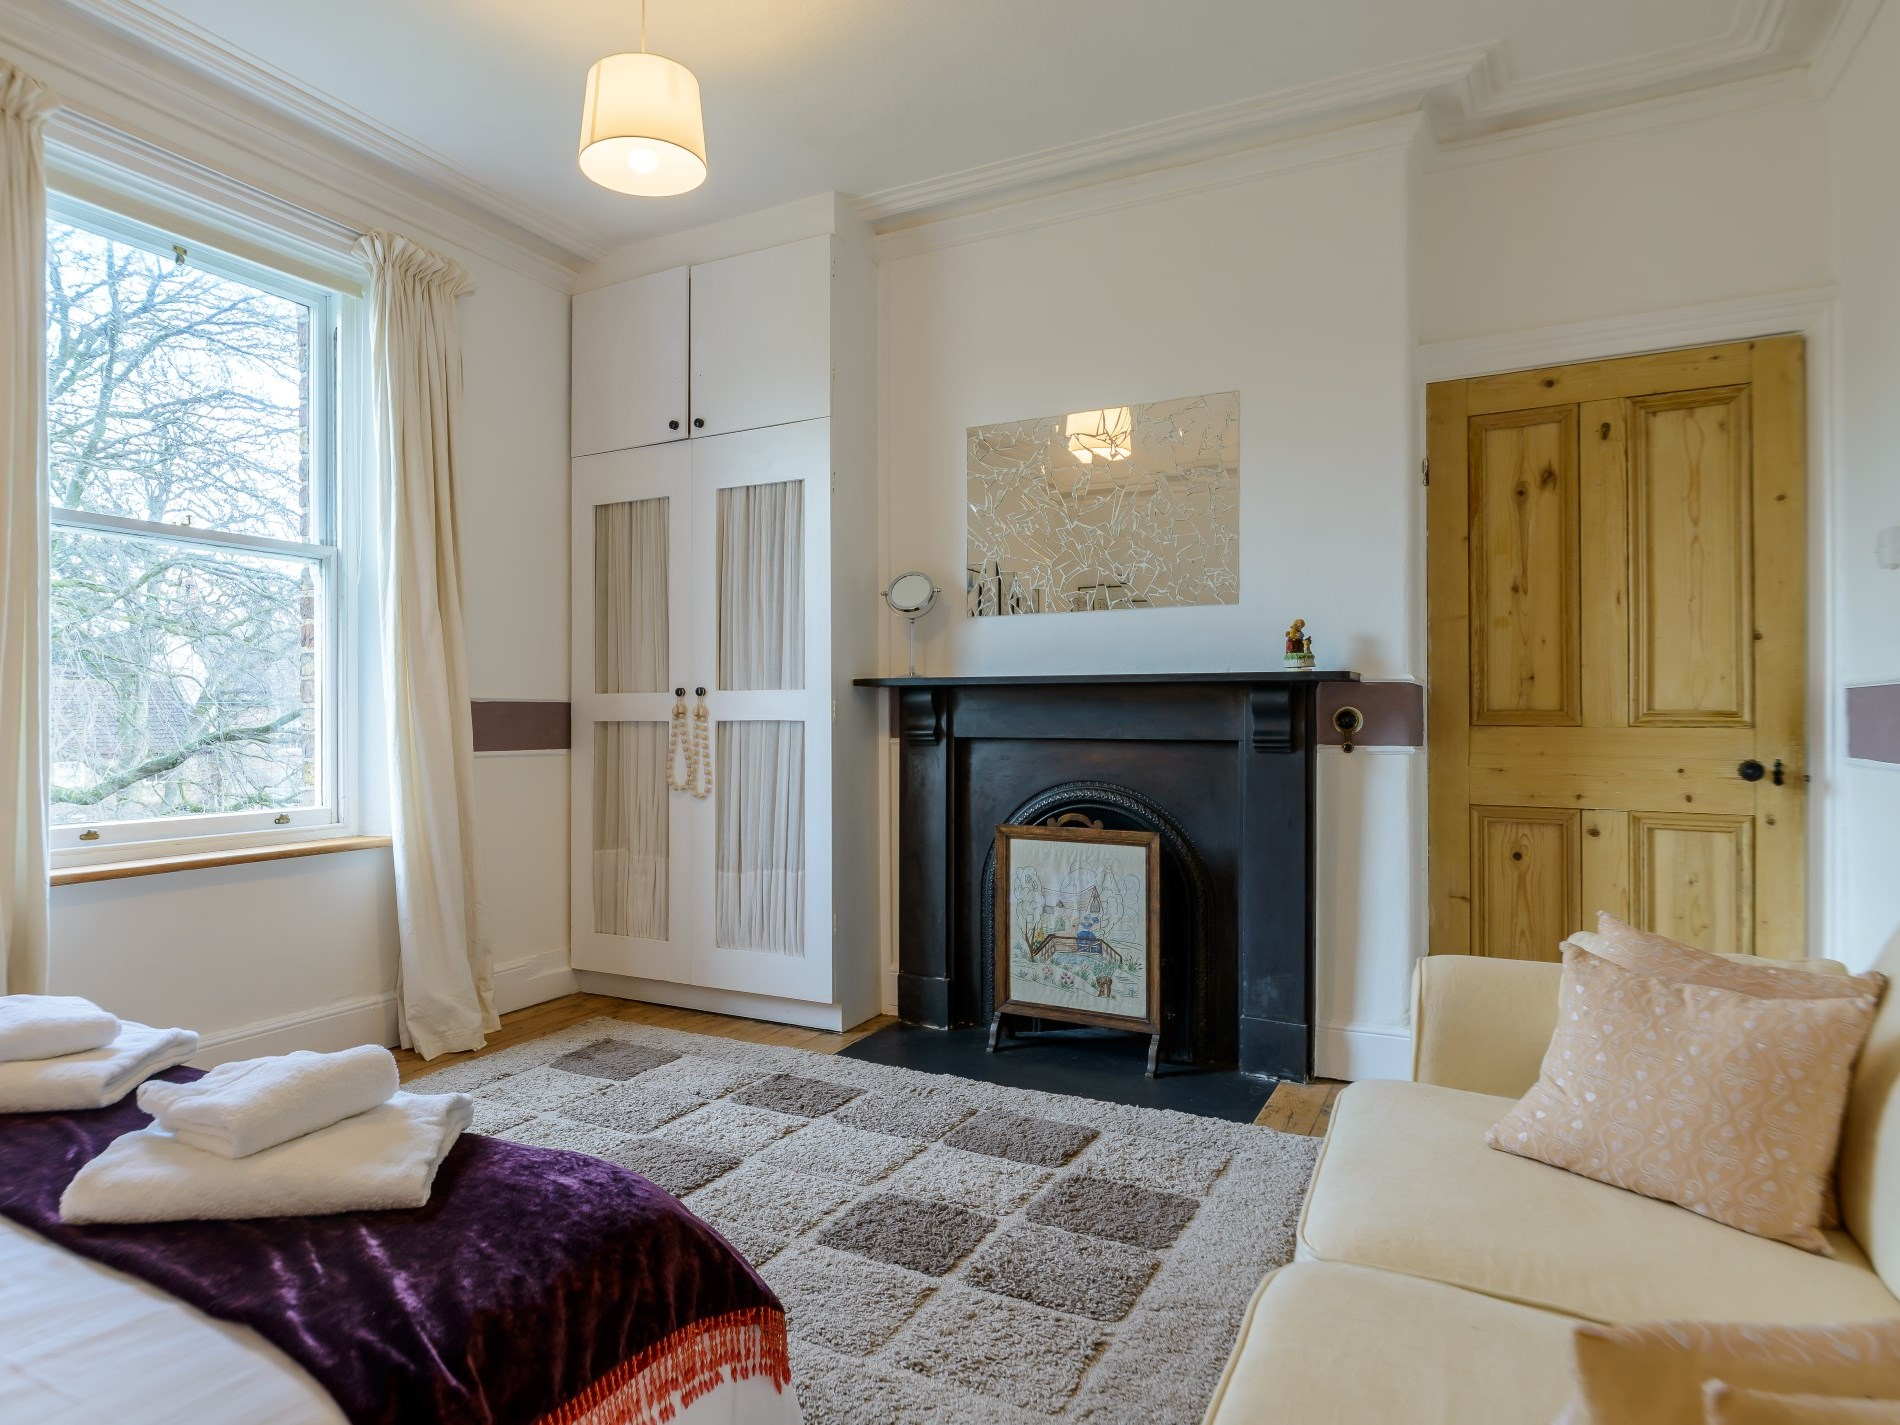 6 Bedroom Cottage in Richmond, Yorkshire Dales